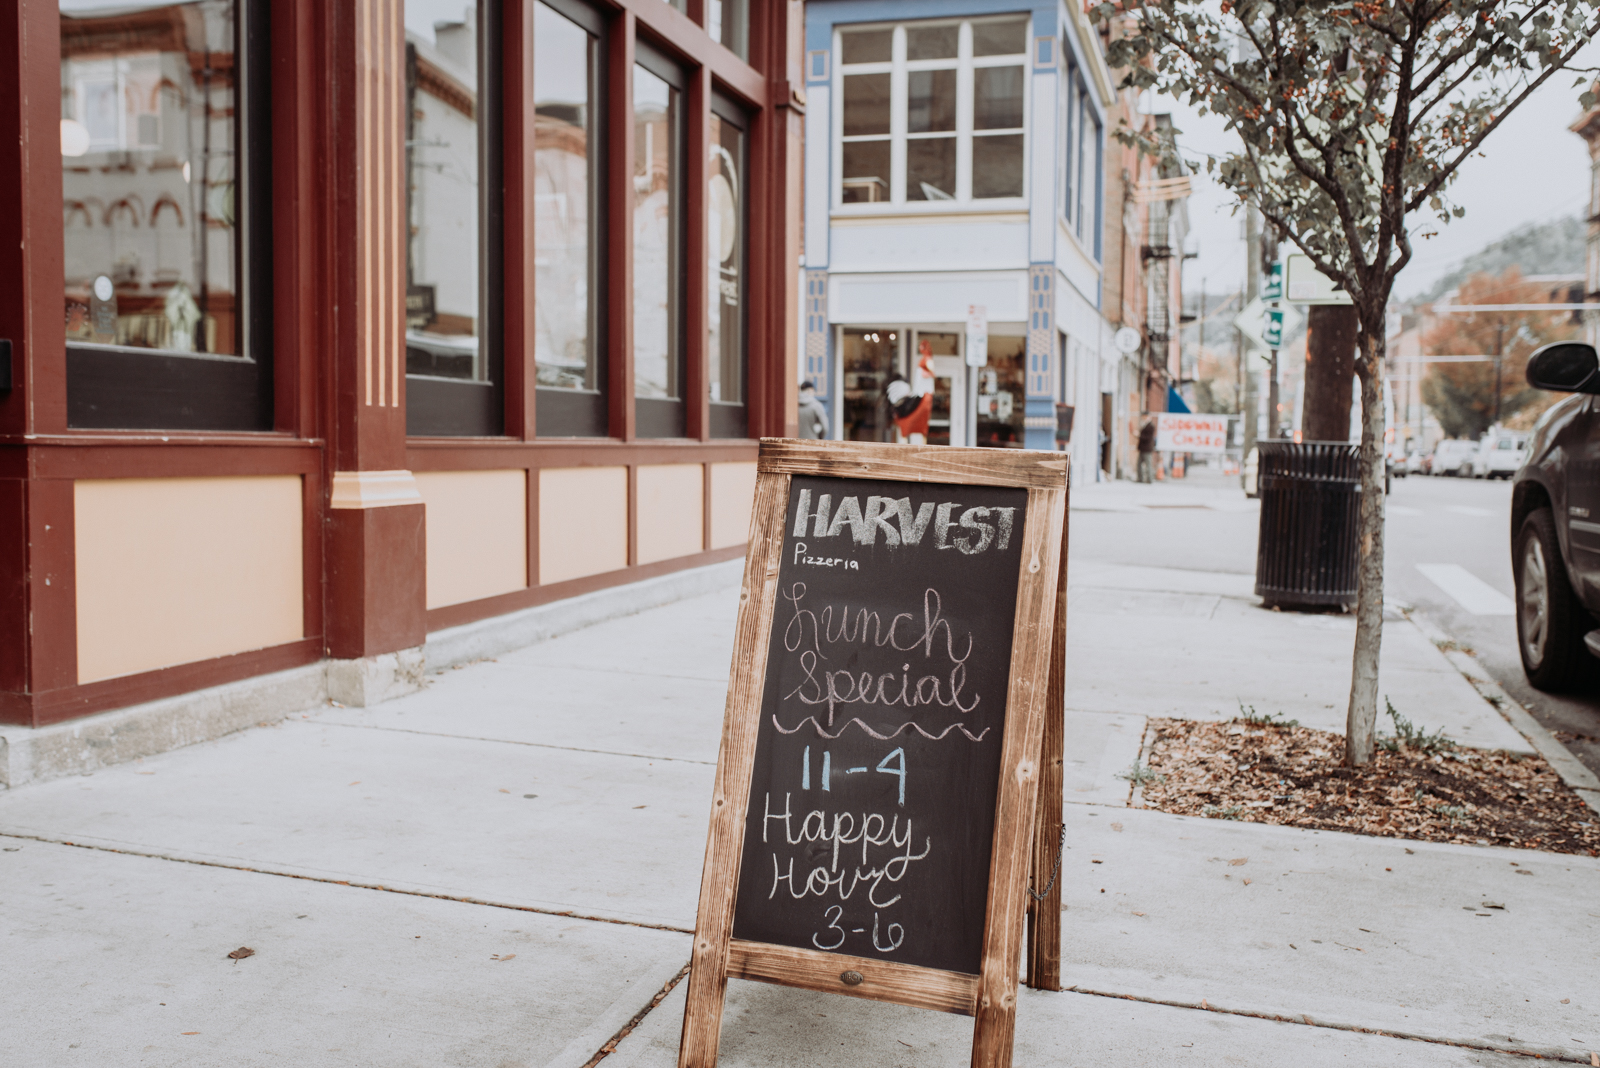 Harvest Pizzeria, located across from Findlay Market on Elm Street, uses wood-fired ovens and unconventional toppings to bring Cincinnatians a taste of what Columbus has been enjoying for years. Their ingredients are culled from sources around the region, making their pizza a true Midwestern product. Additionally, the restaurant serves burgers, salads, and various appetizers fitting multiple dietary requirements. ADDRESS: 1739 Elm Street (45202) / Image: Brianna Long // Published: 11.8.17